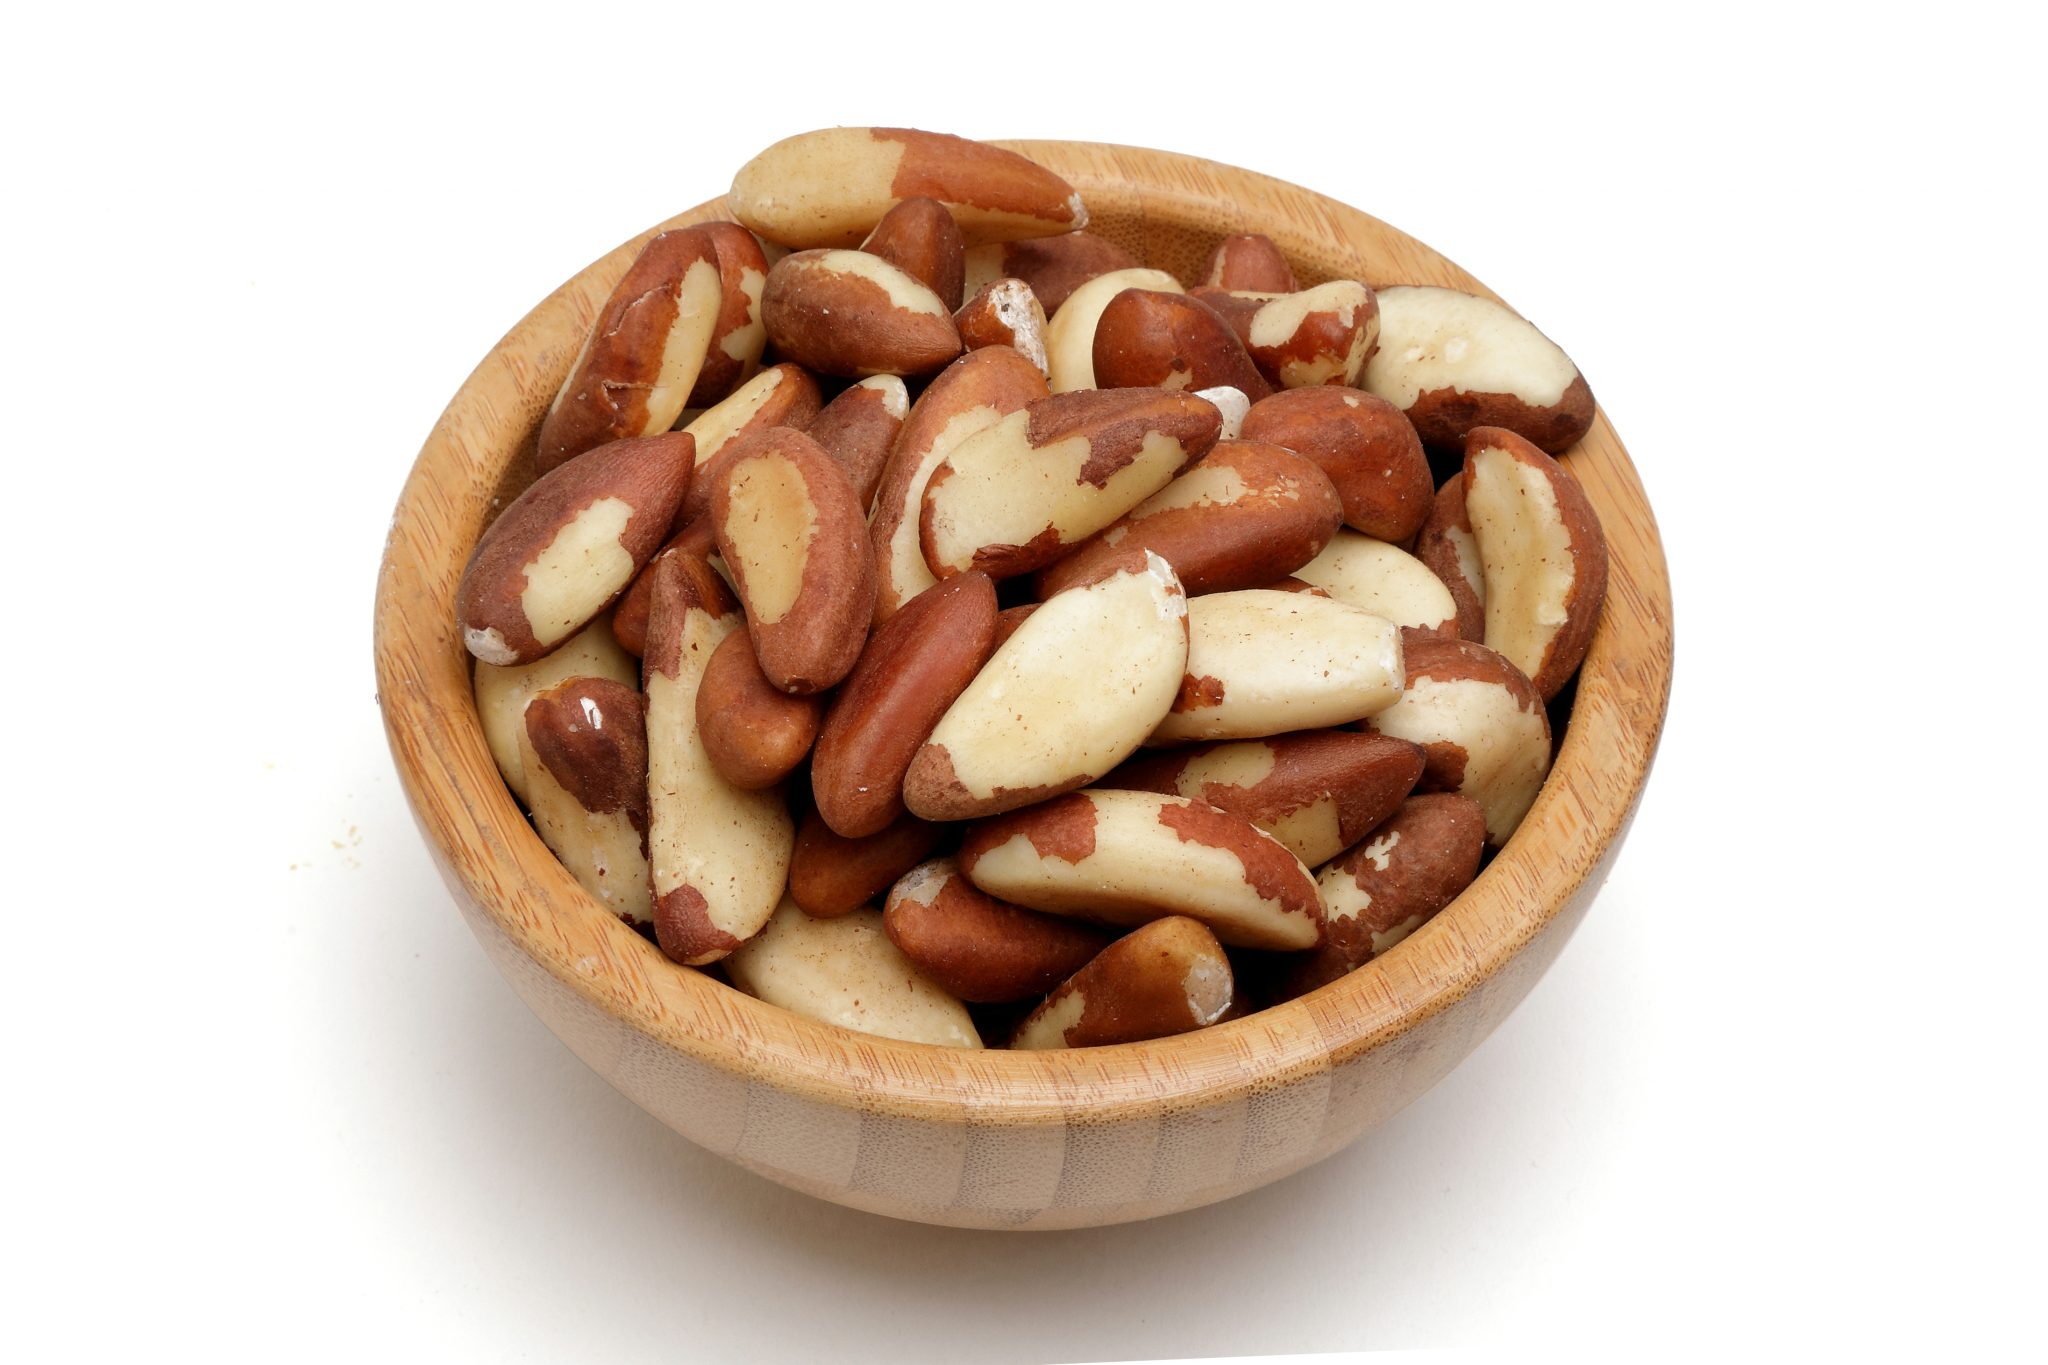 Chandras healthy vegan snack brazil nuts in a bowl